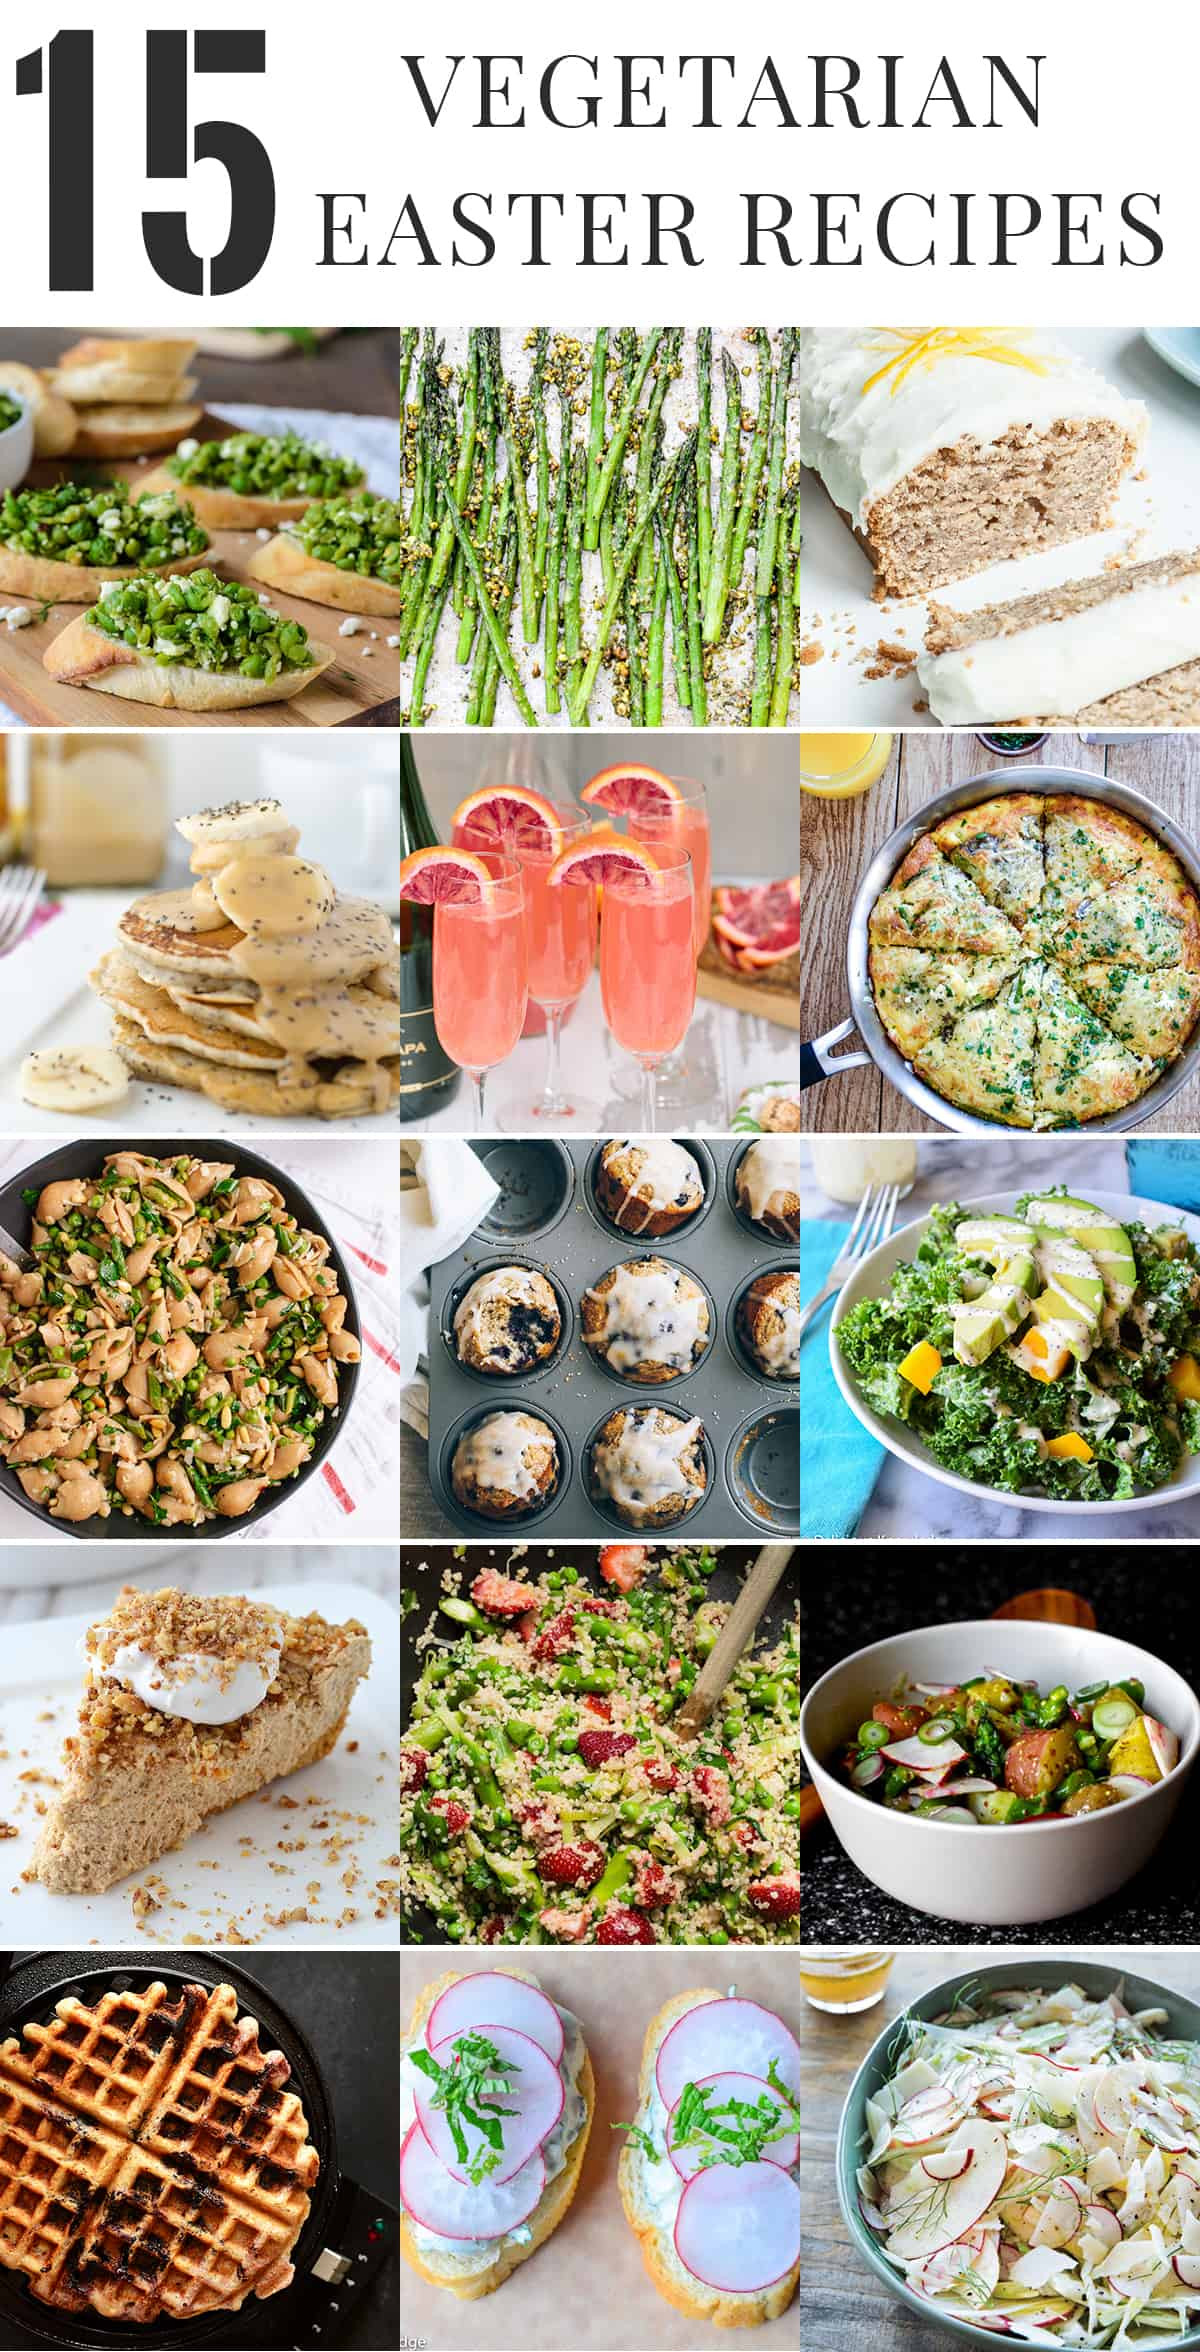 Vegetarian Easter Brunch Recipes  Healthy Ve arian Easter Recipes Delish Knowledge